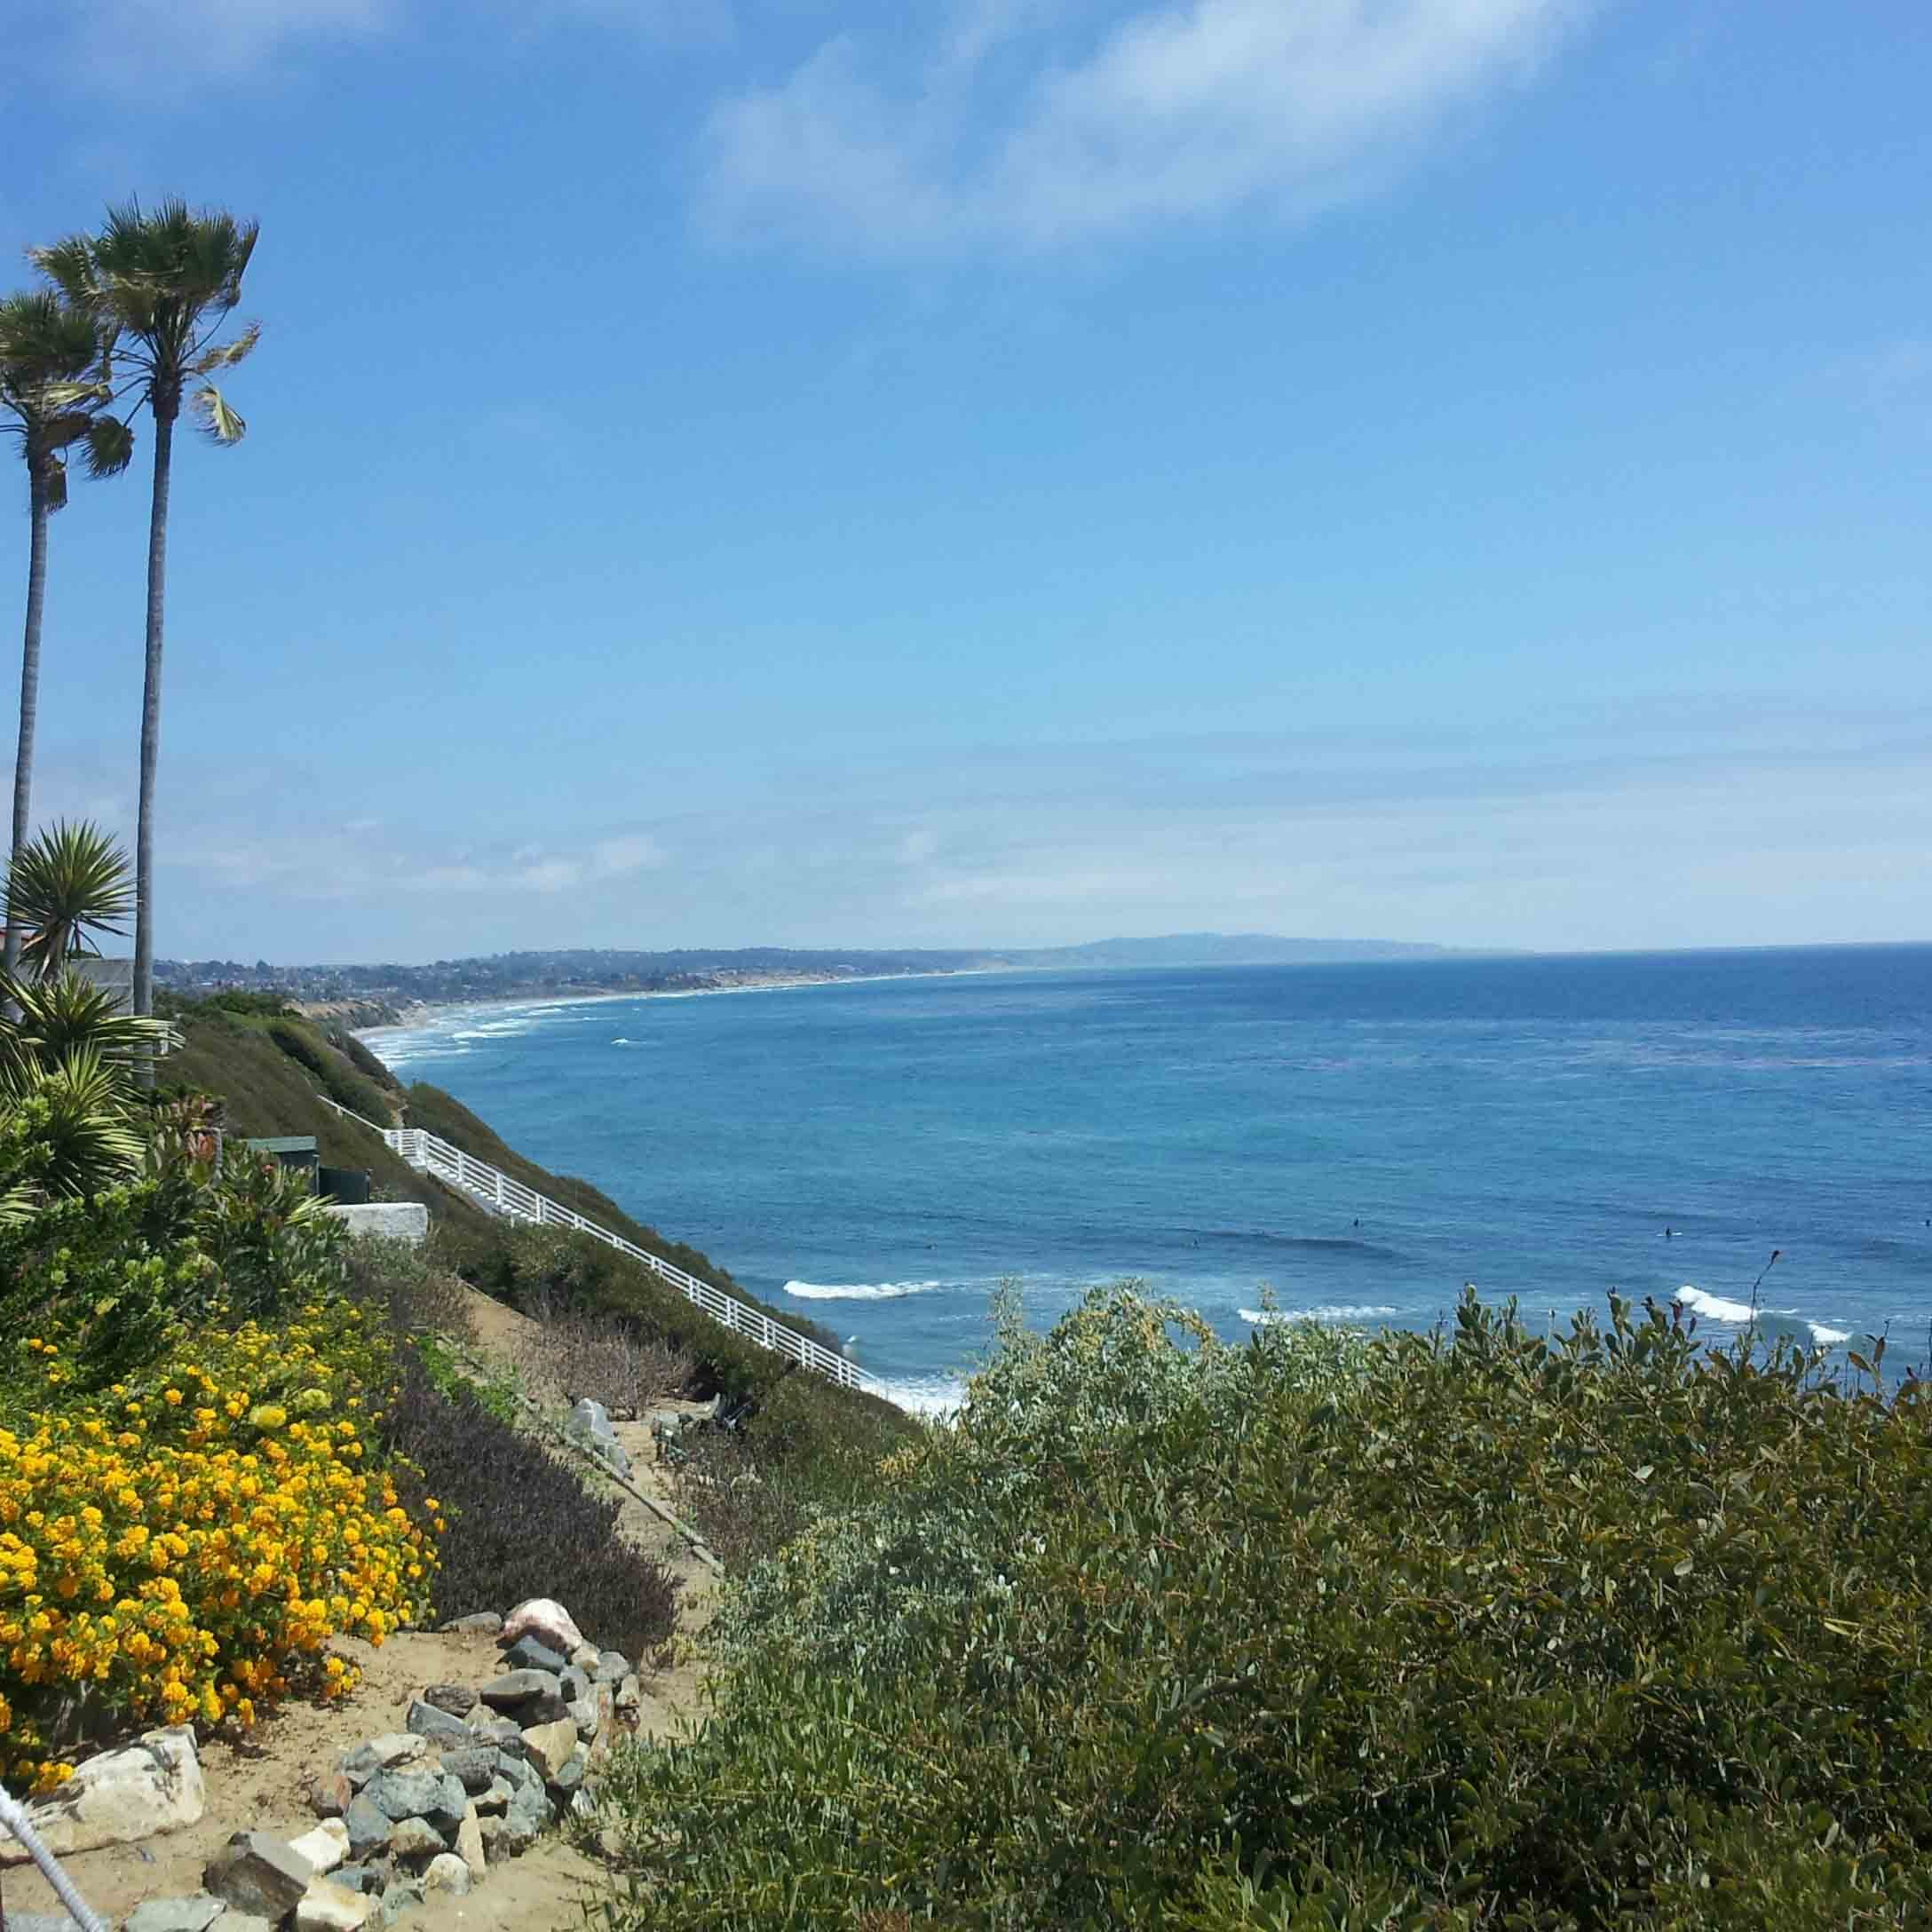 Self Realization Fellowship Encinitas